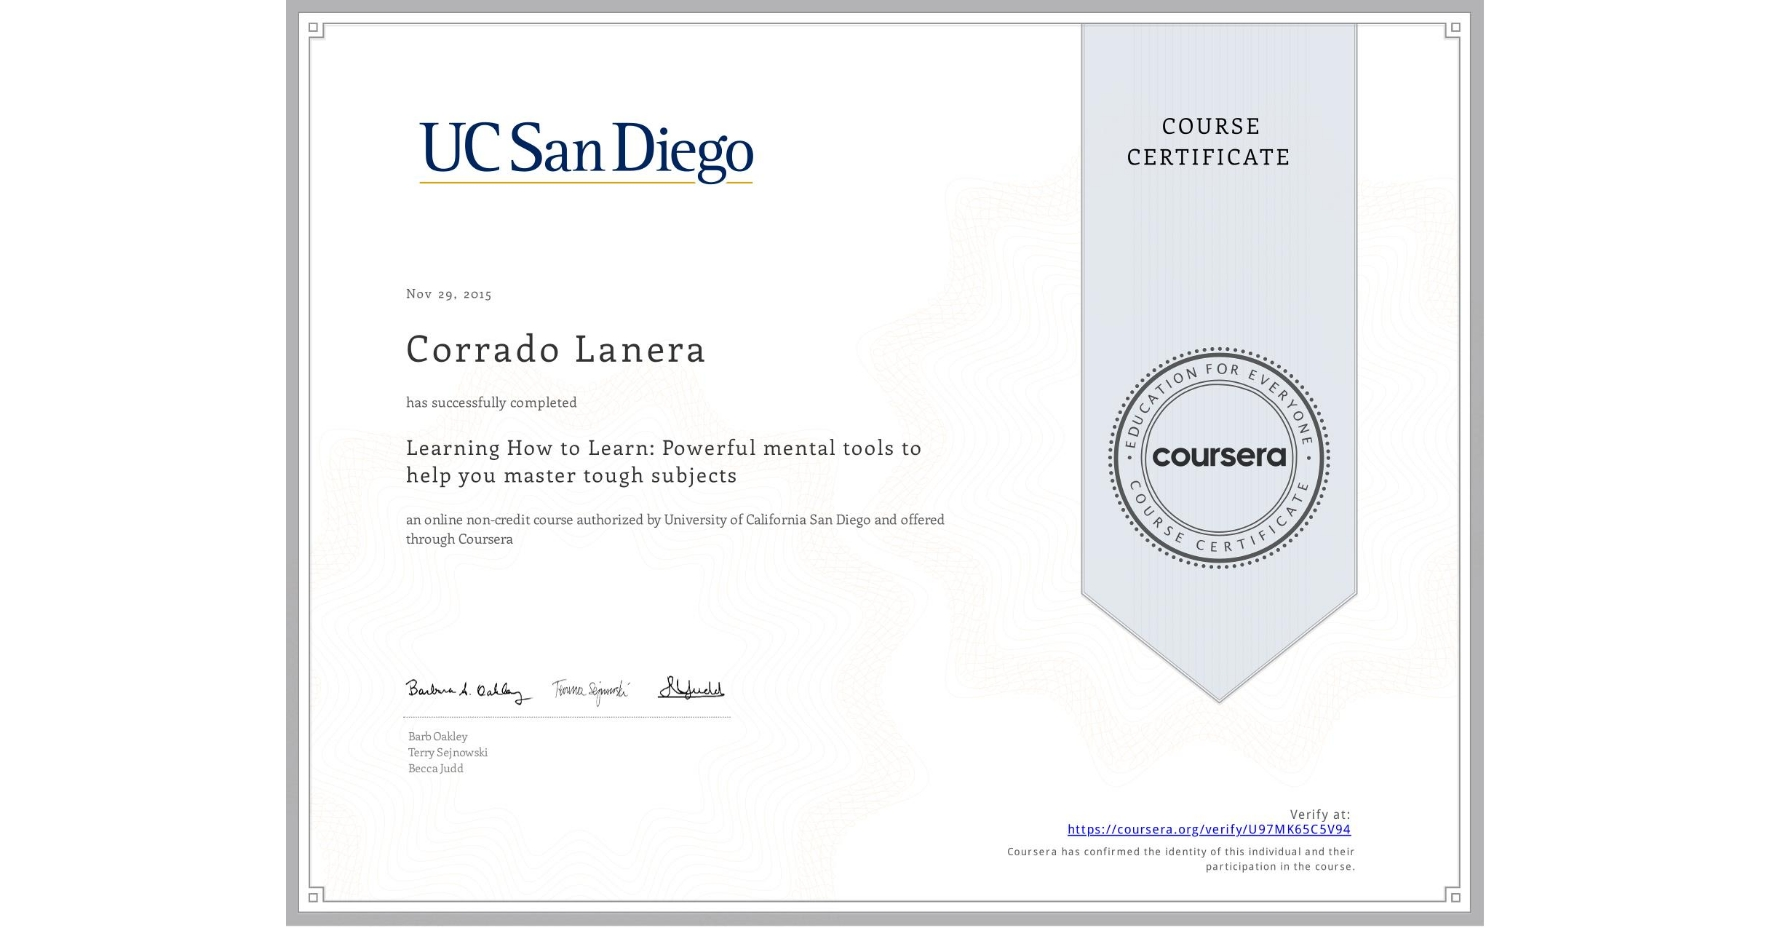 View certificate for Corrado Lanera, Learning How to Learn: Powerful mental tools to help you master tough subjects, an online non-credit course authorized by McMaster University & University of California San Diego and offered through Coursera